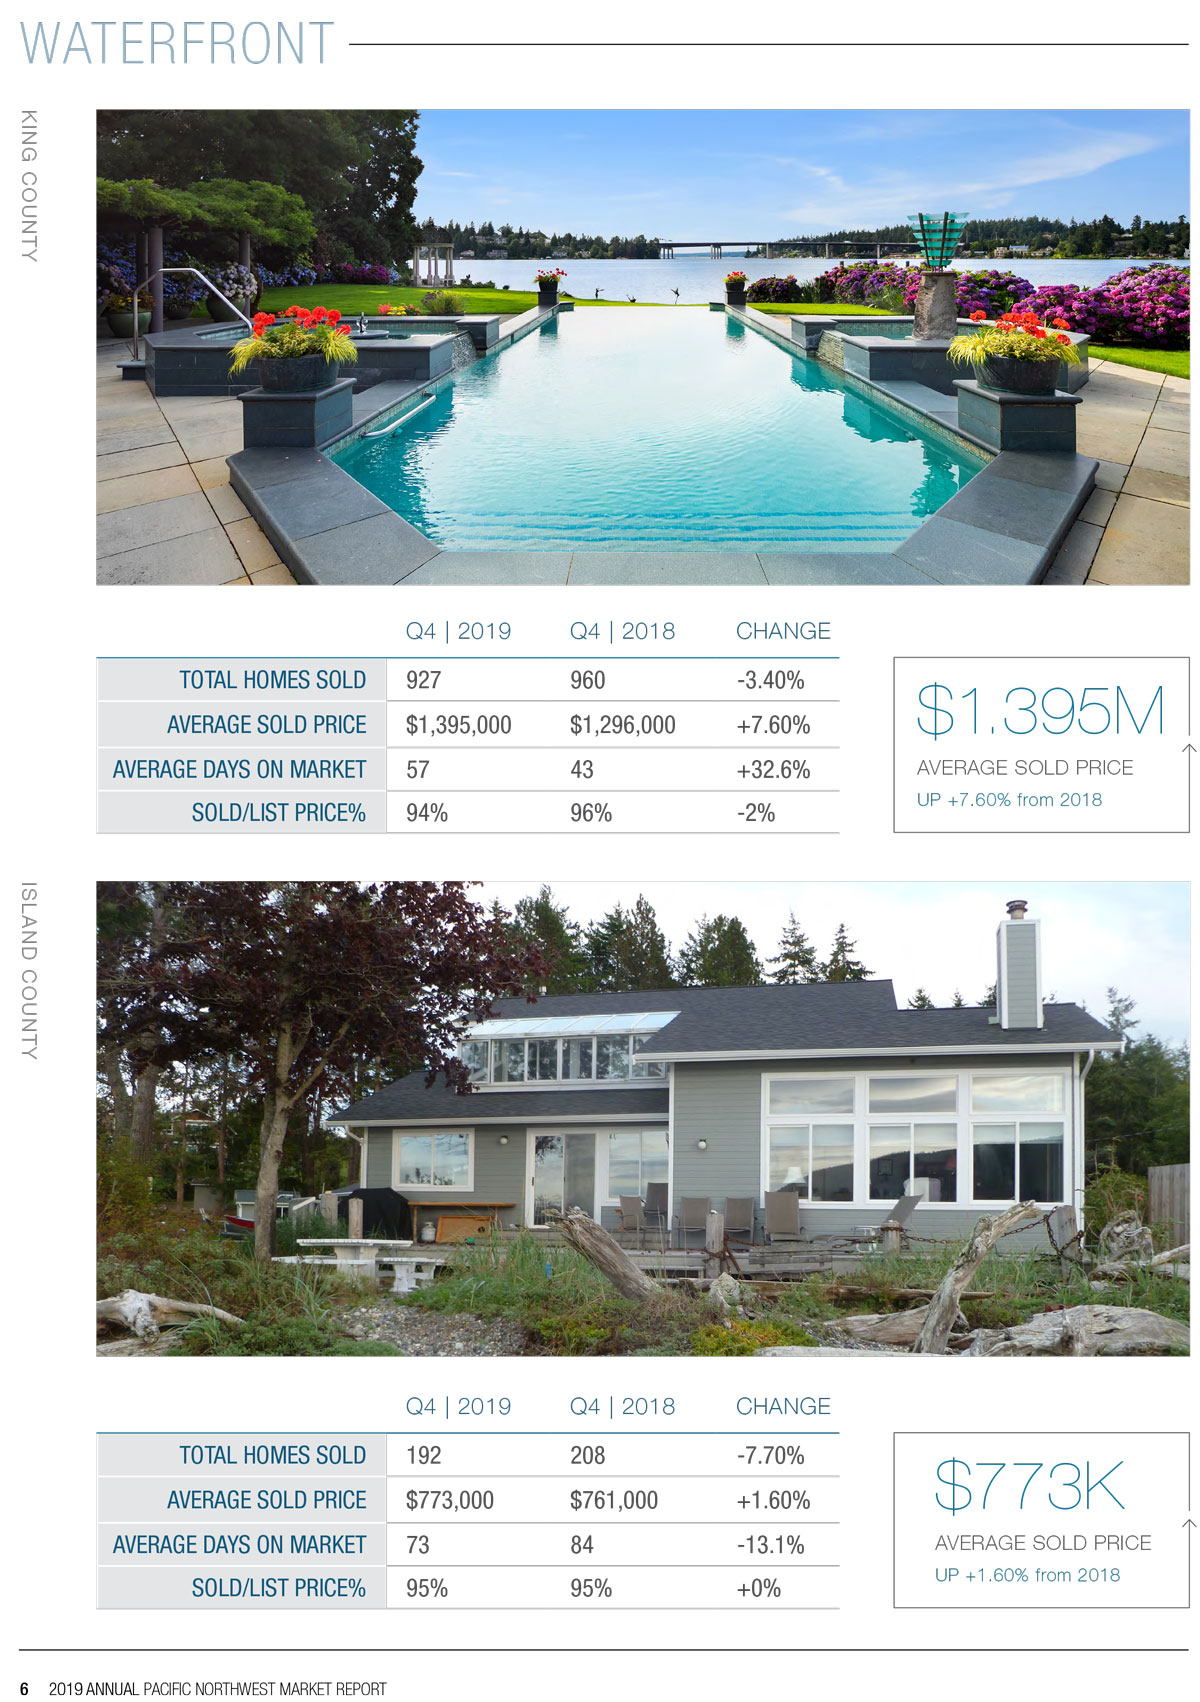 2019 Waterfront Market Report Page 2